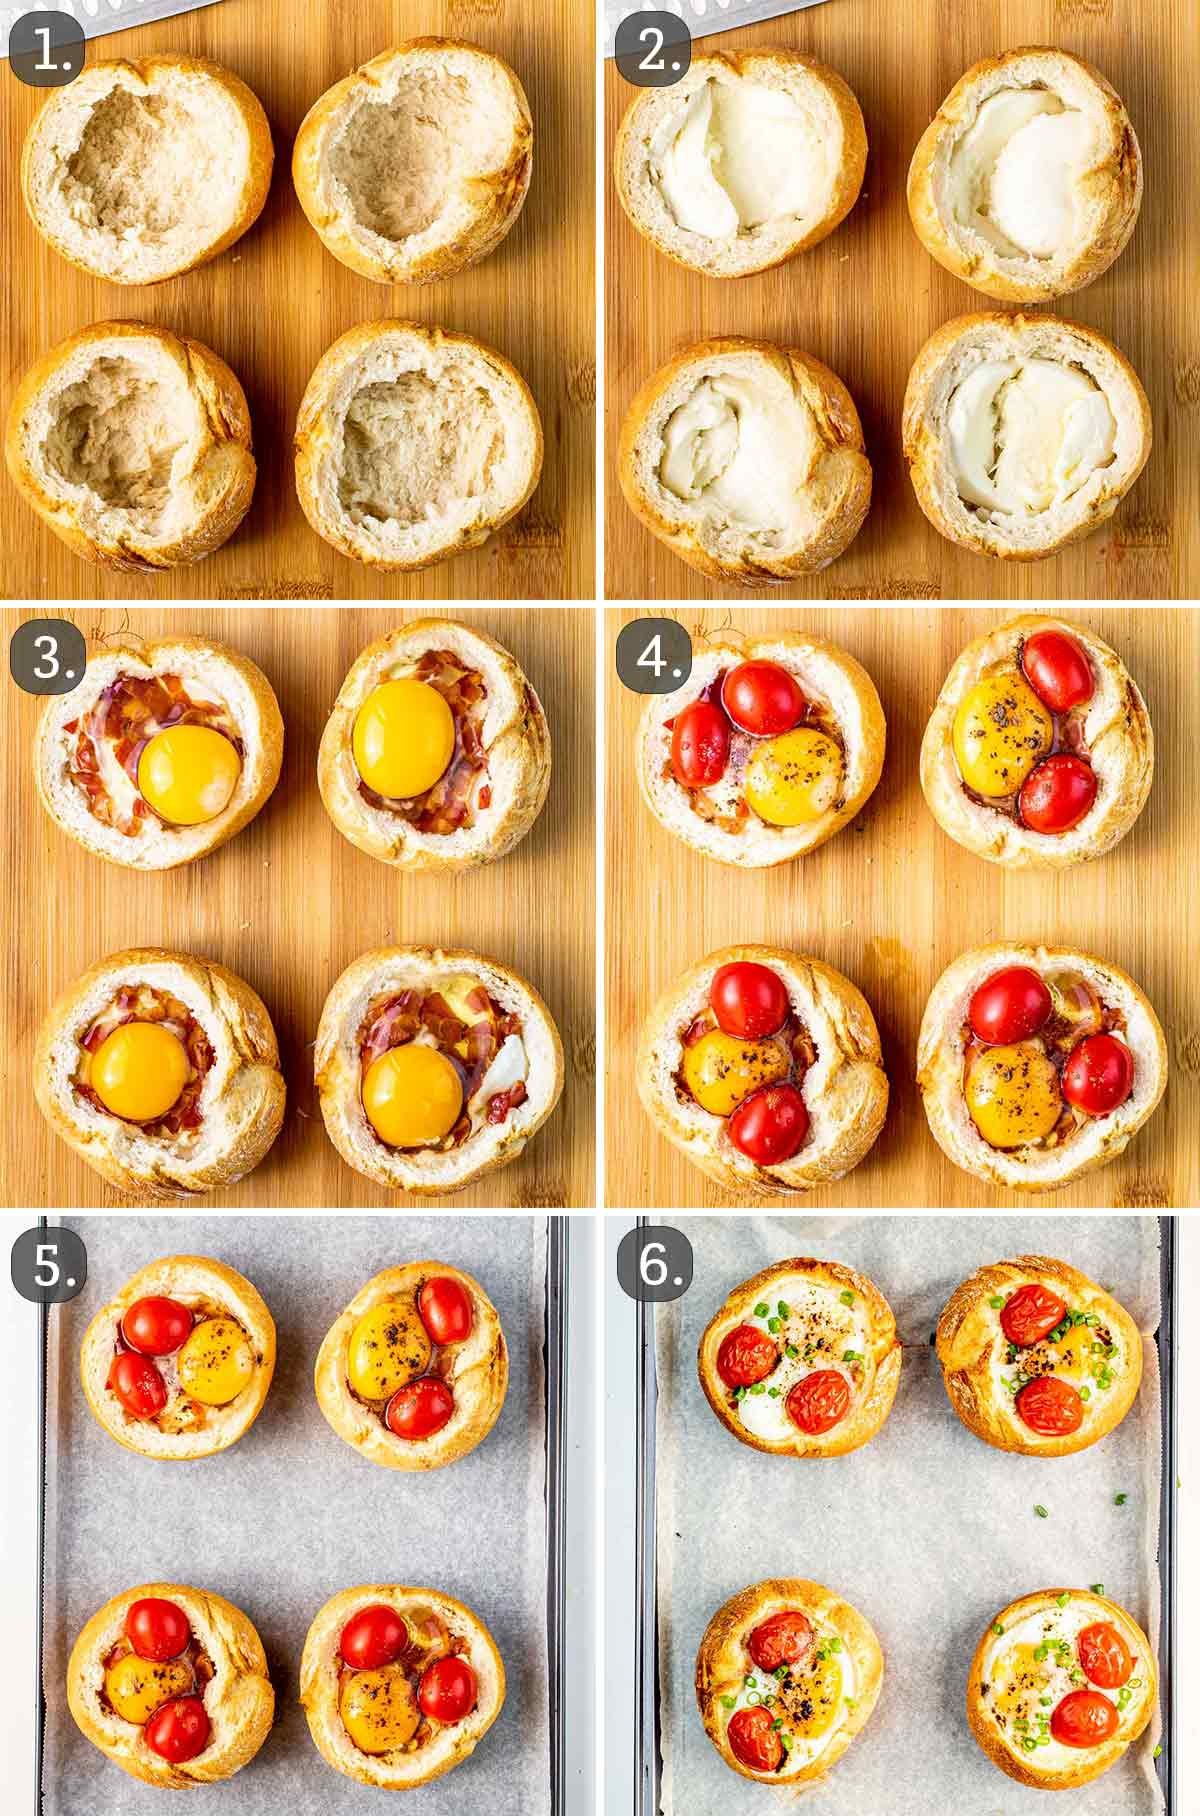 detailed process shots showing how to make eggs and bacon breakfast bowls.